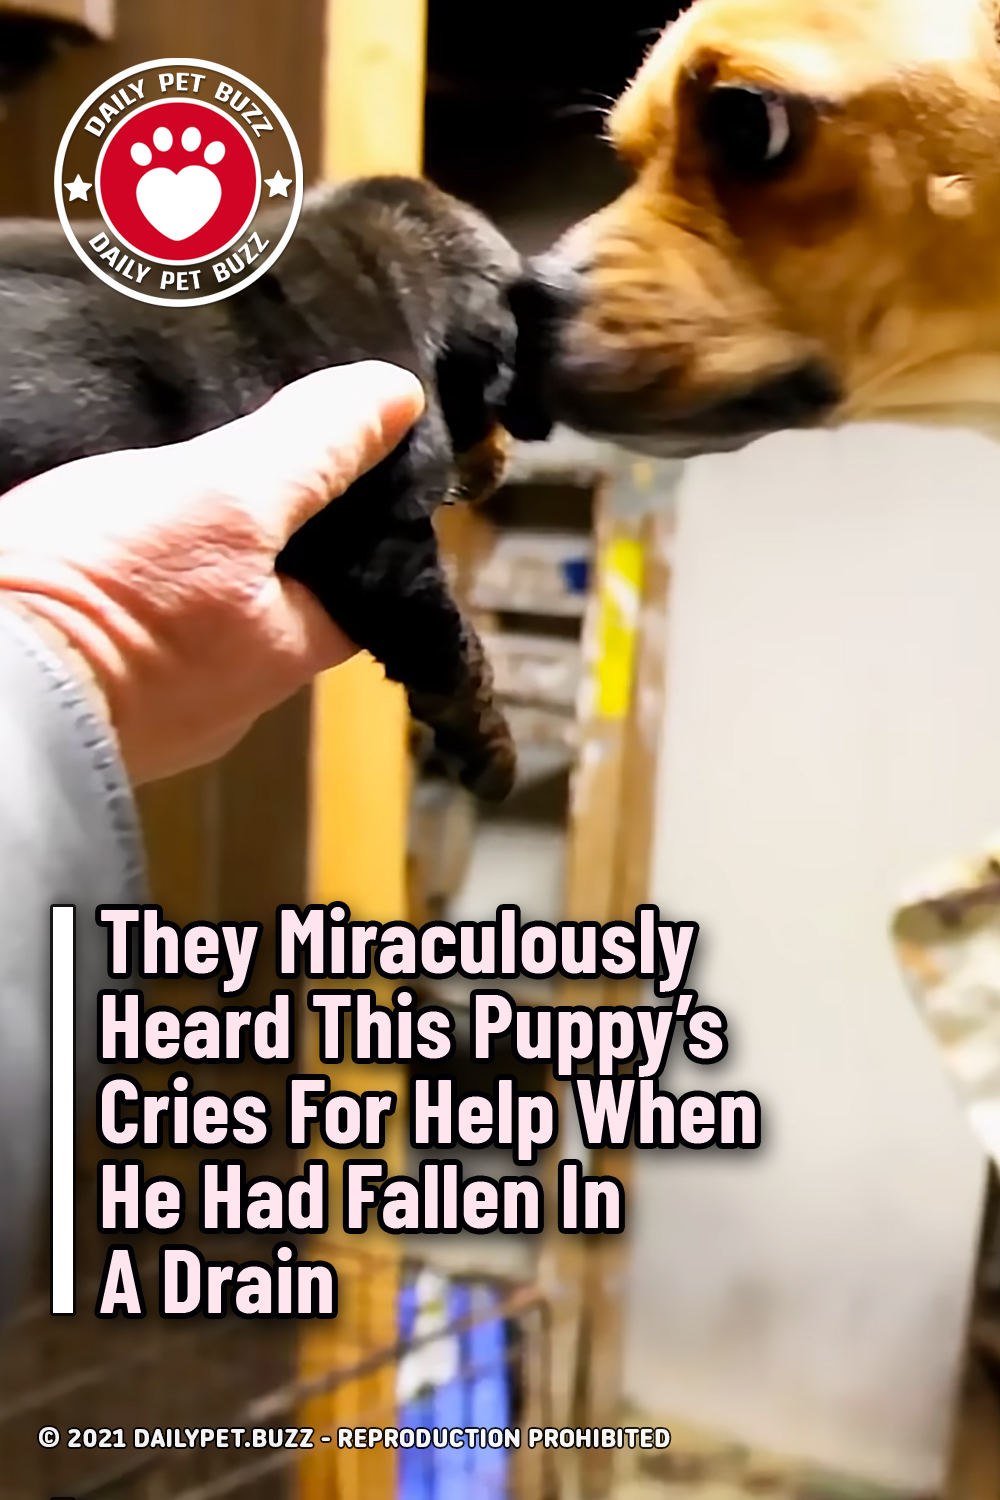 They Miraculously Heard This Puppy\'s Cries For Help When He Had Fallen In A Drain